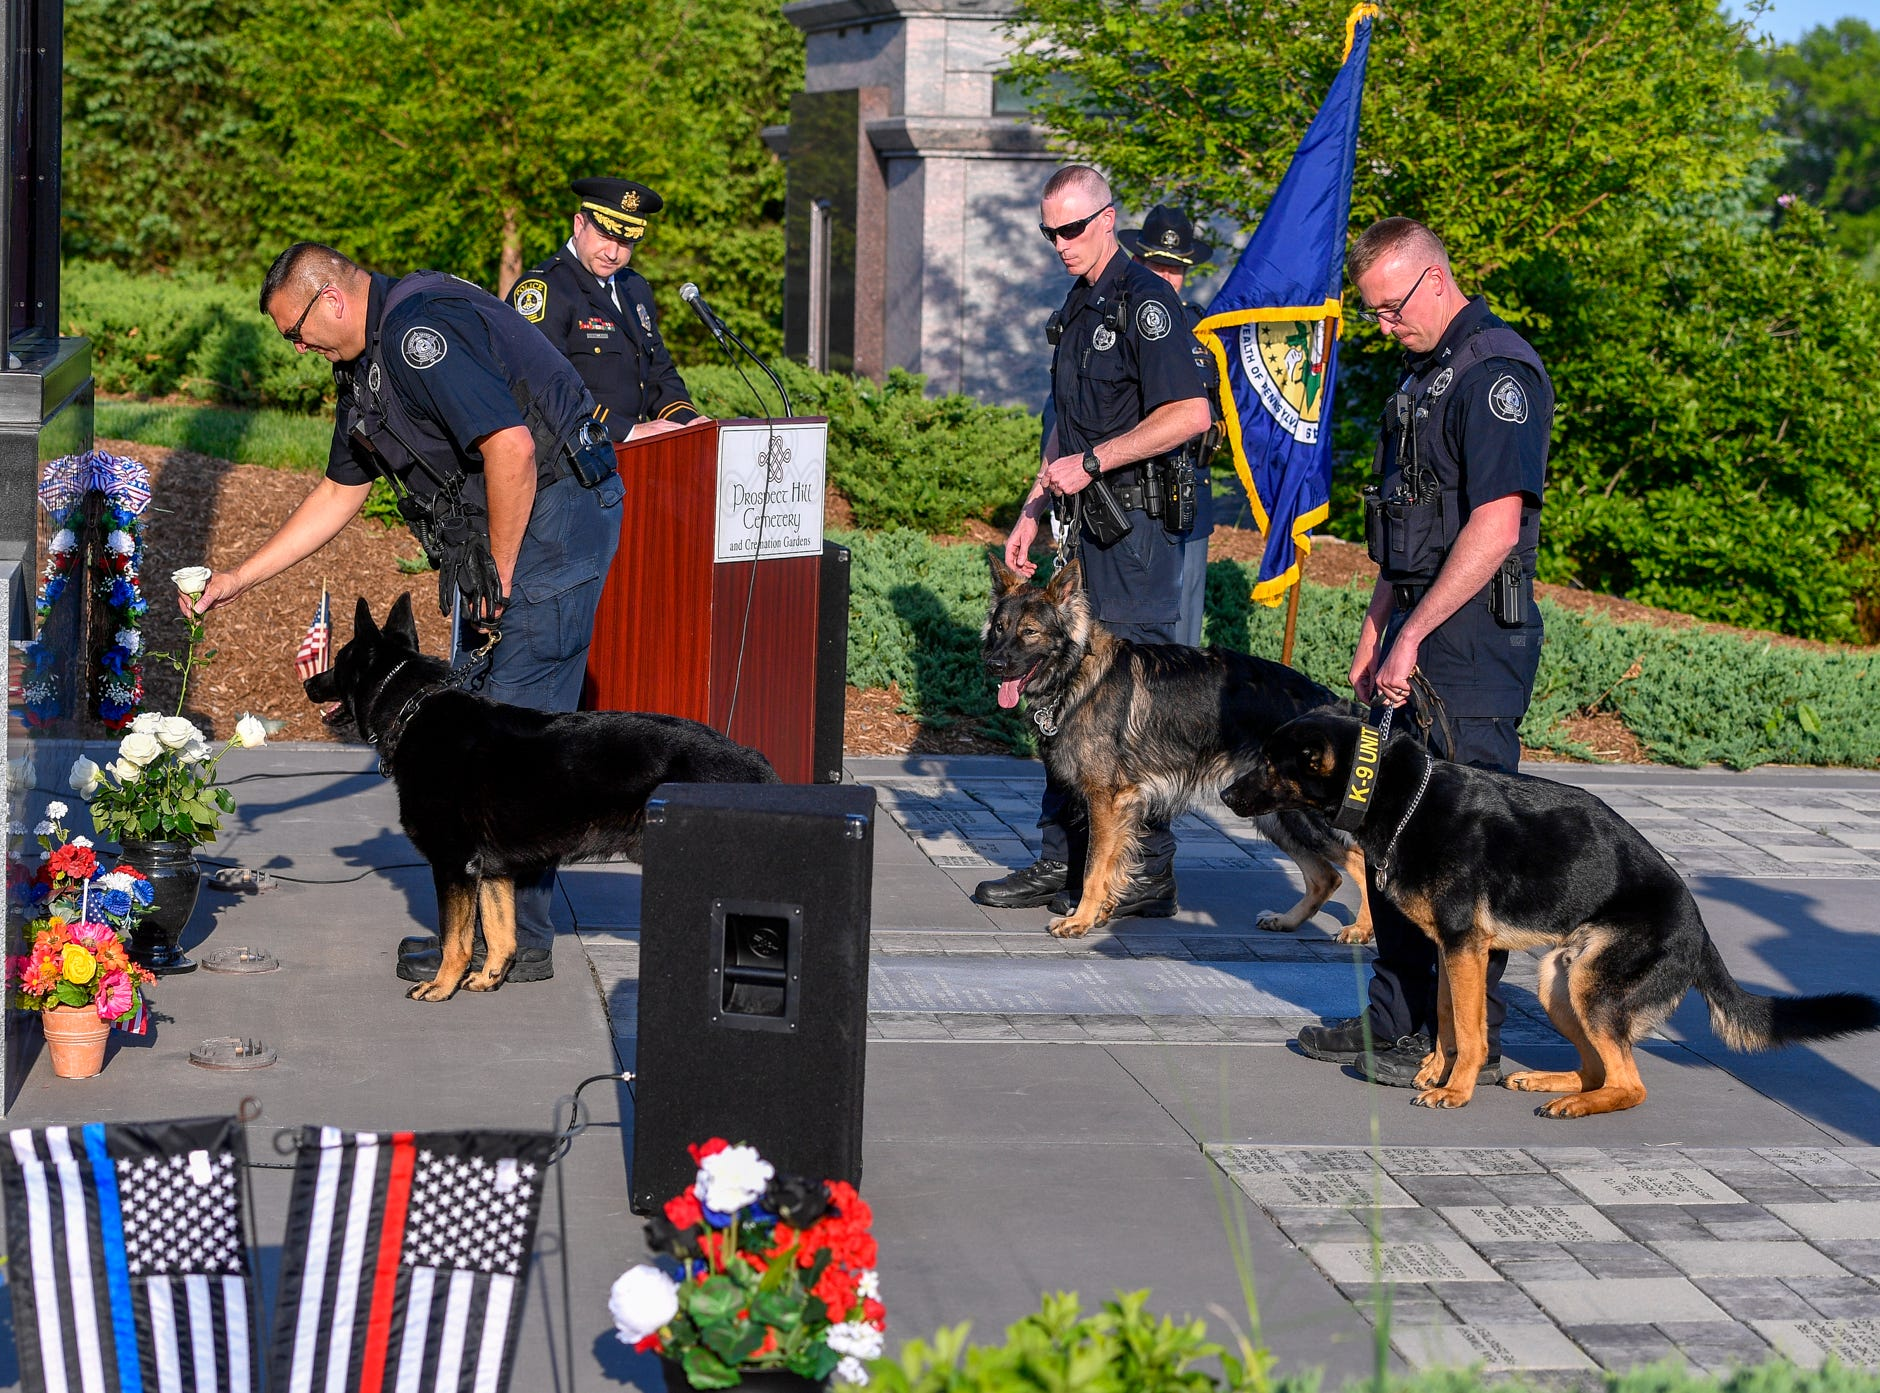 Members of the York County Sheriff's Office K9 Unit place a white rose at the Safekeepers Shrine in honor of K9 Lt. Lou during the Law Enforcement Community Remembrance event at Prospect Hill Cemetery,  Tuesday, May 7, 2019.